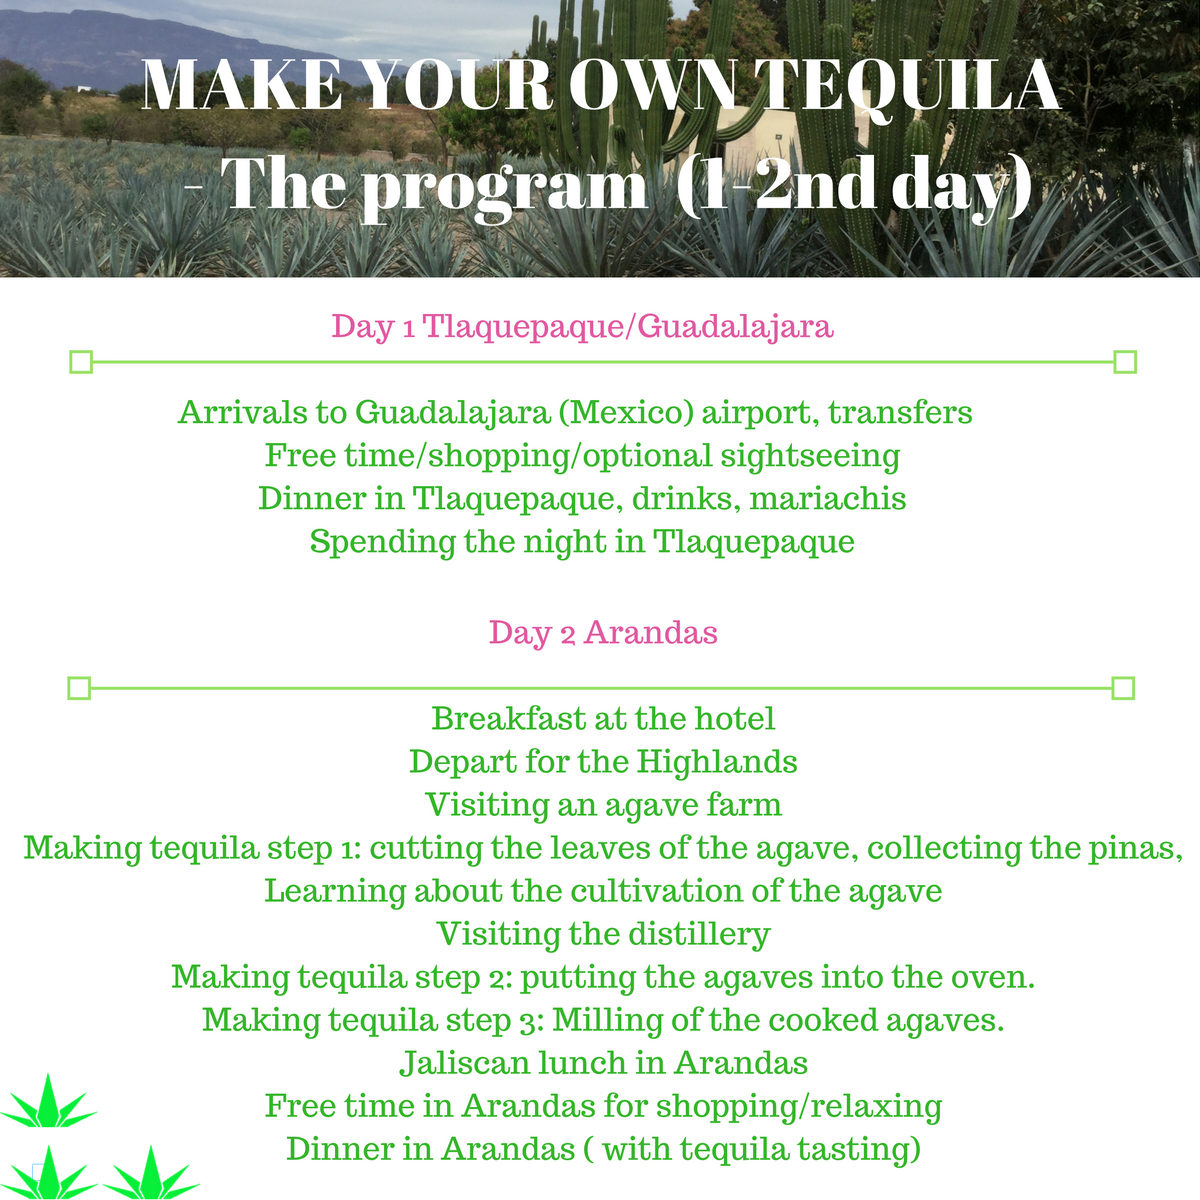 Makeyourowntequila program tequila academy for Build your own house price